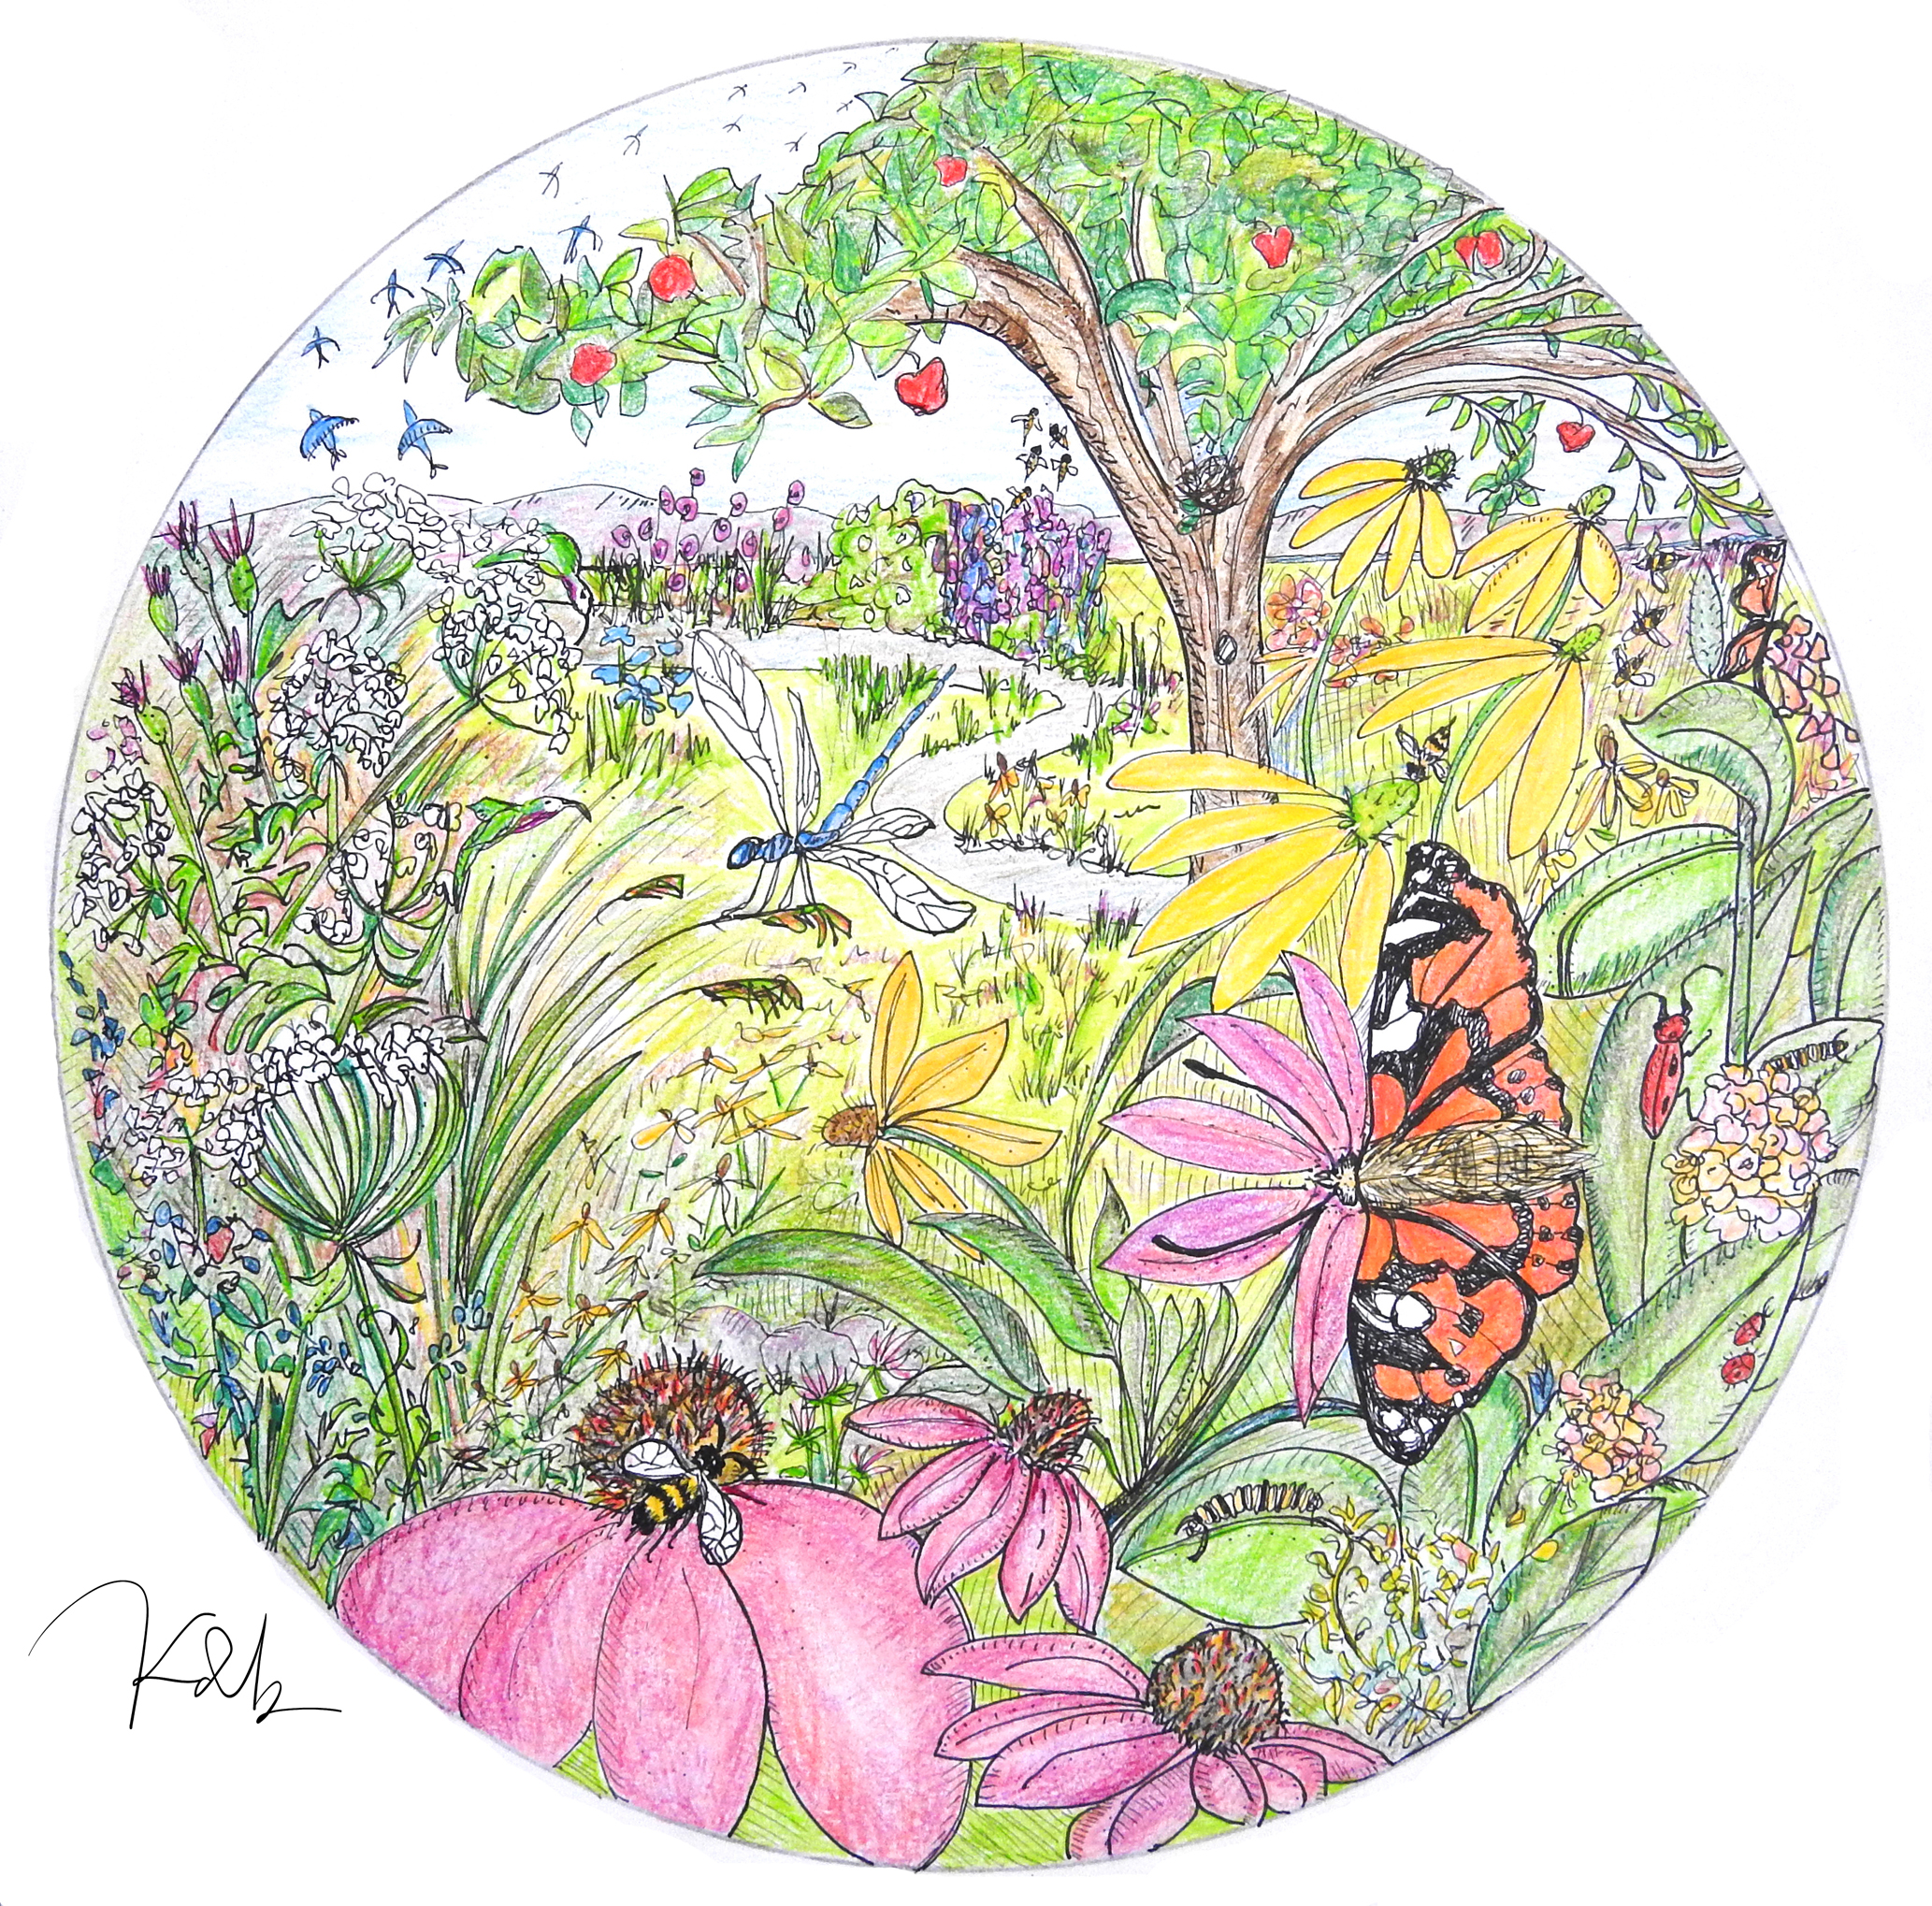 Pollinator EYESPY IllustrationSMALL